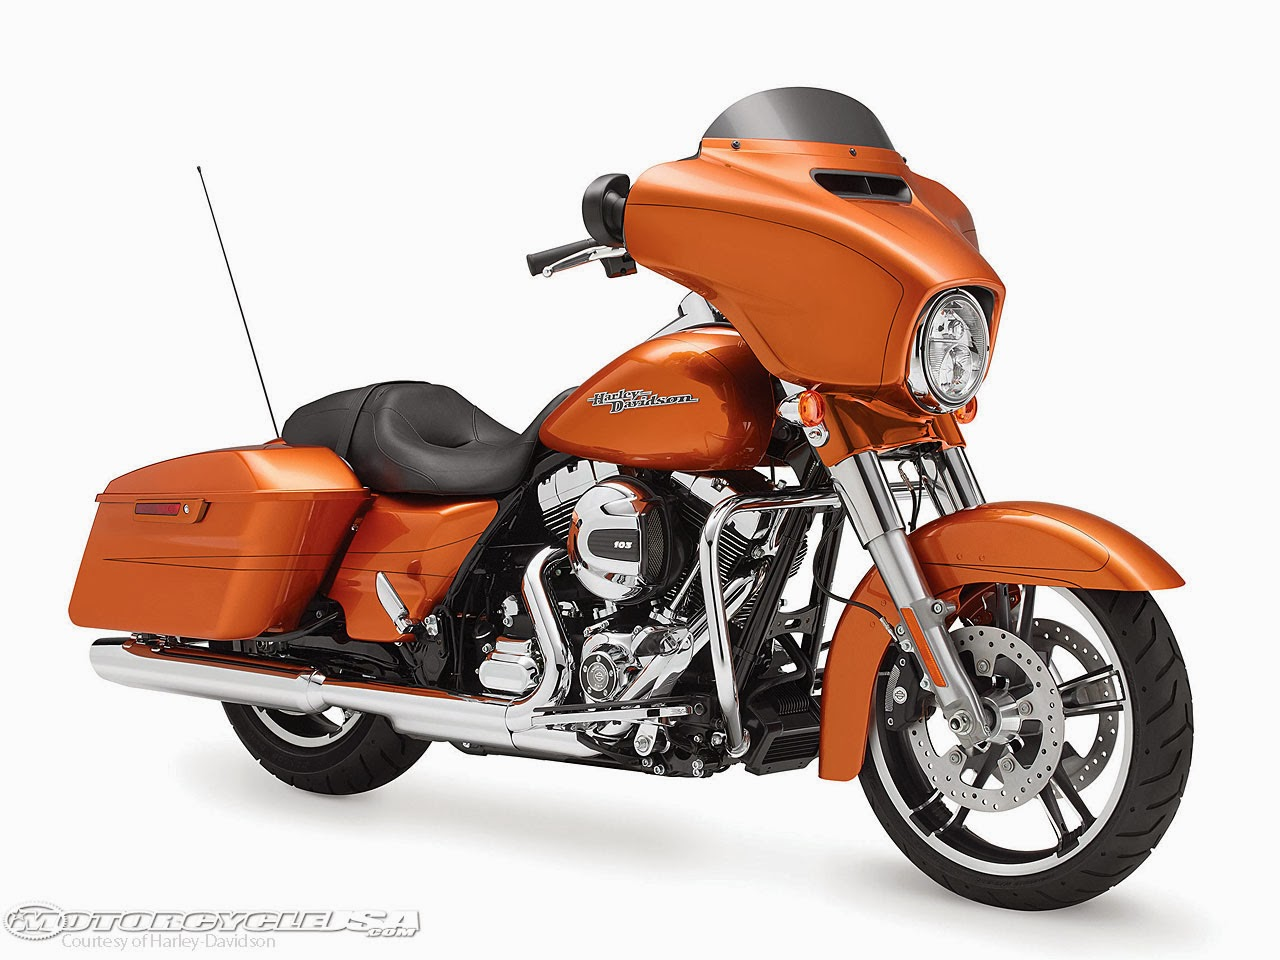 2014 harley davidson street glide picture apps directories